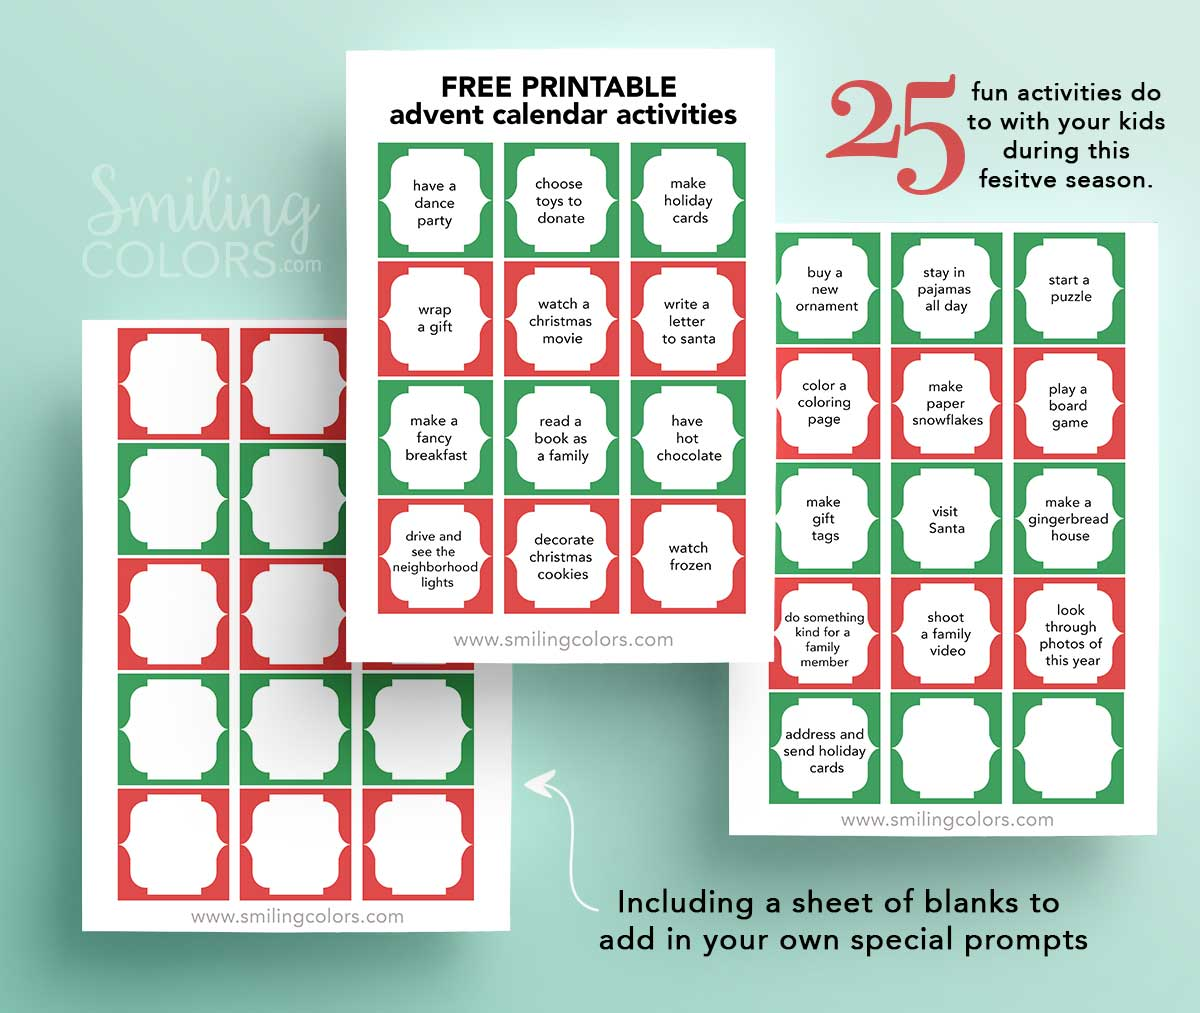 image about Printable Christmas Calendar named Totally free printable introduction calendar functions - Smitha Katti